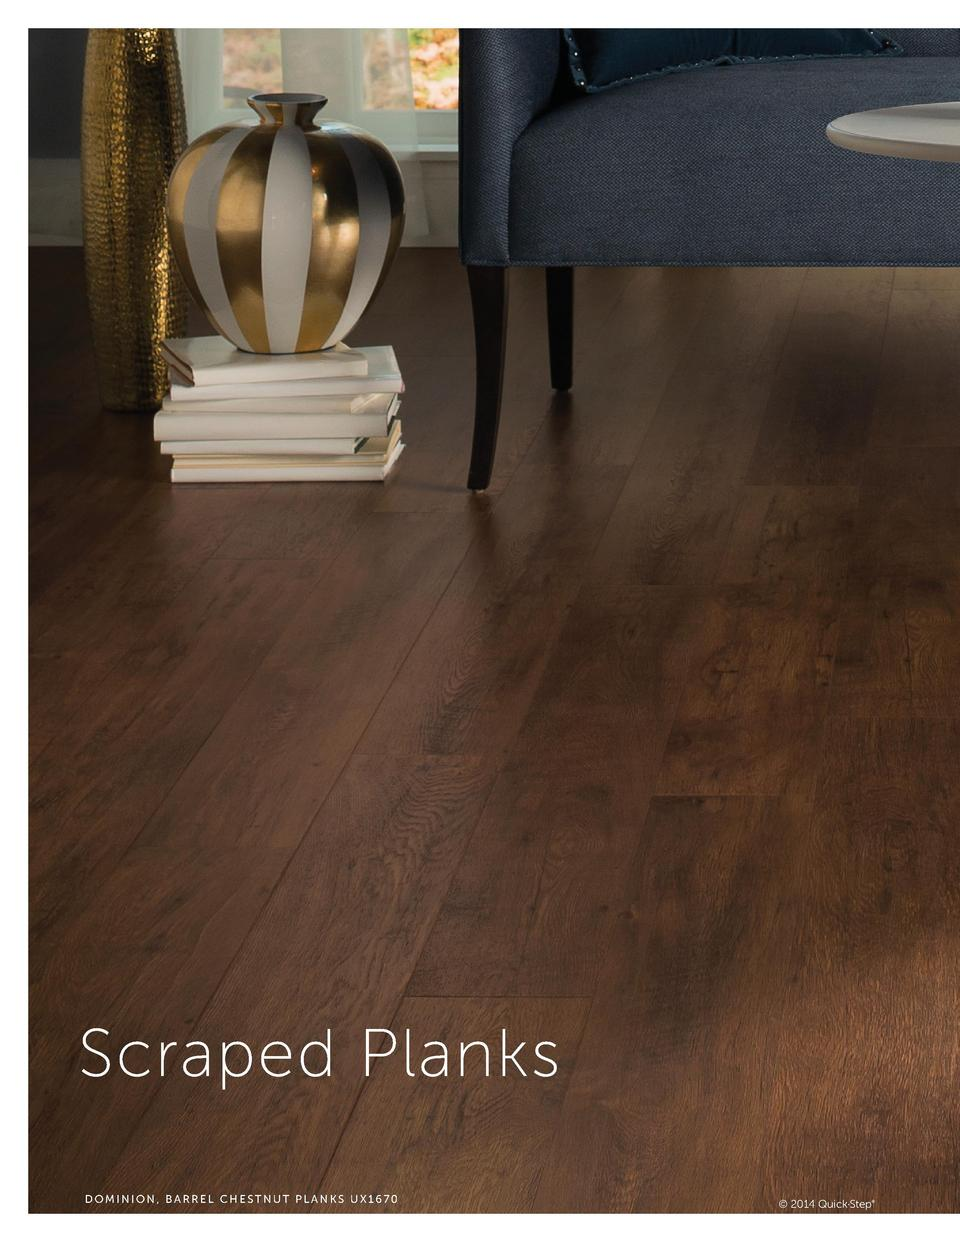 Scraped Planks DOMINION, BARREL CHESTNUT PLANKS UX1670     2014 Quick Step